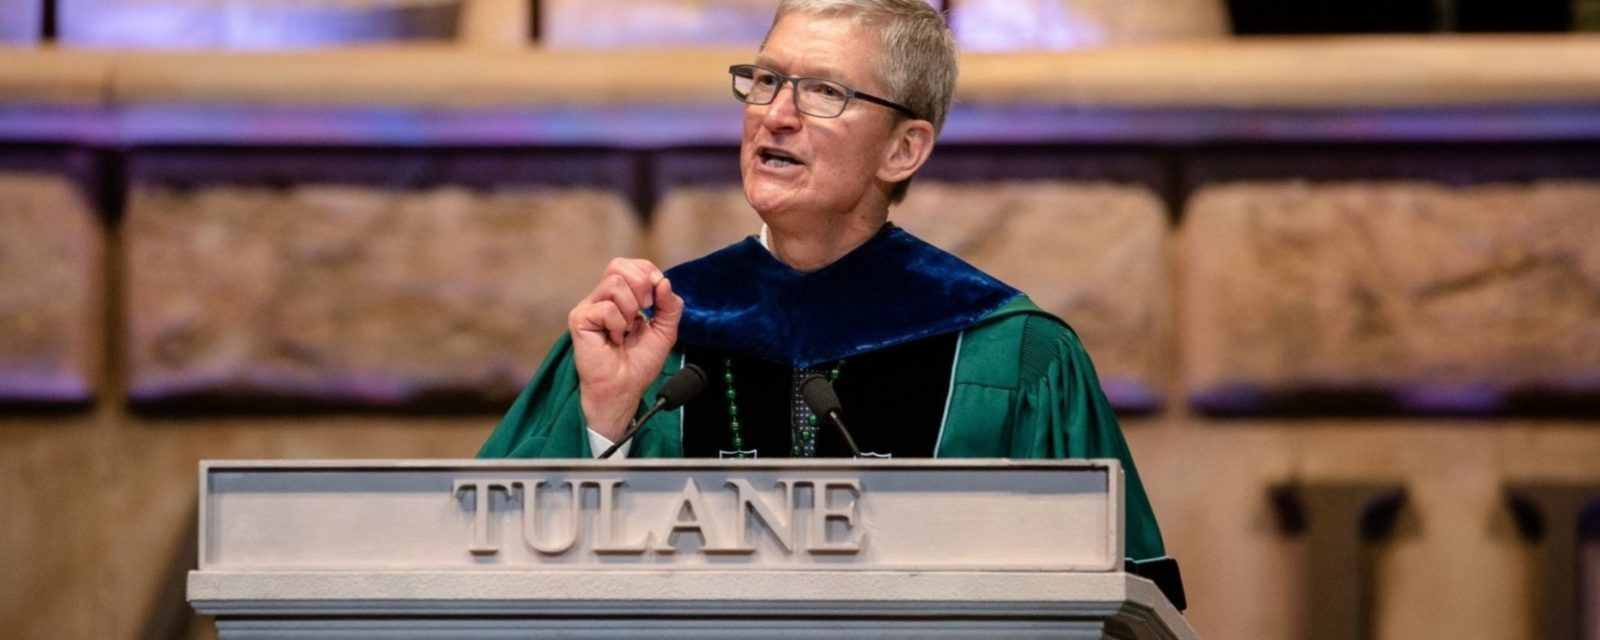 The Trust Building Tool Celebrity Commencement Speakers Use